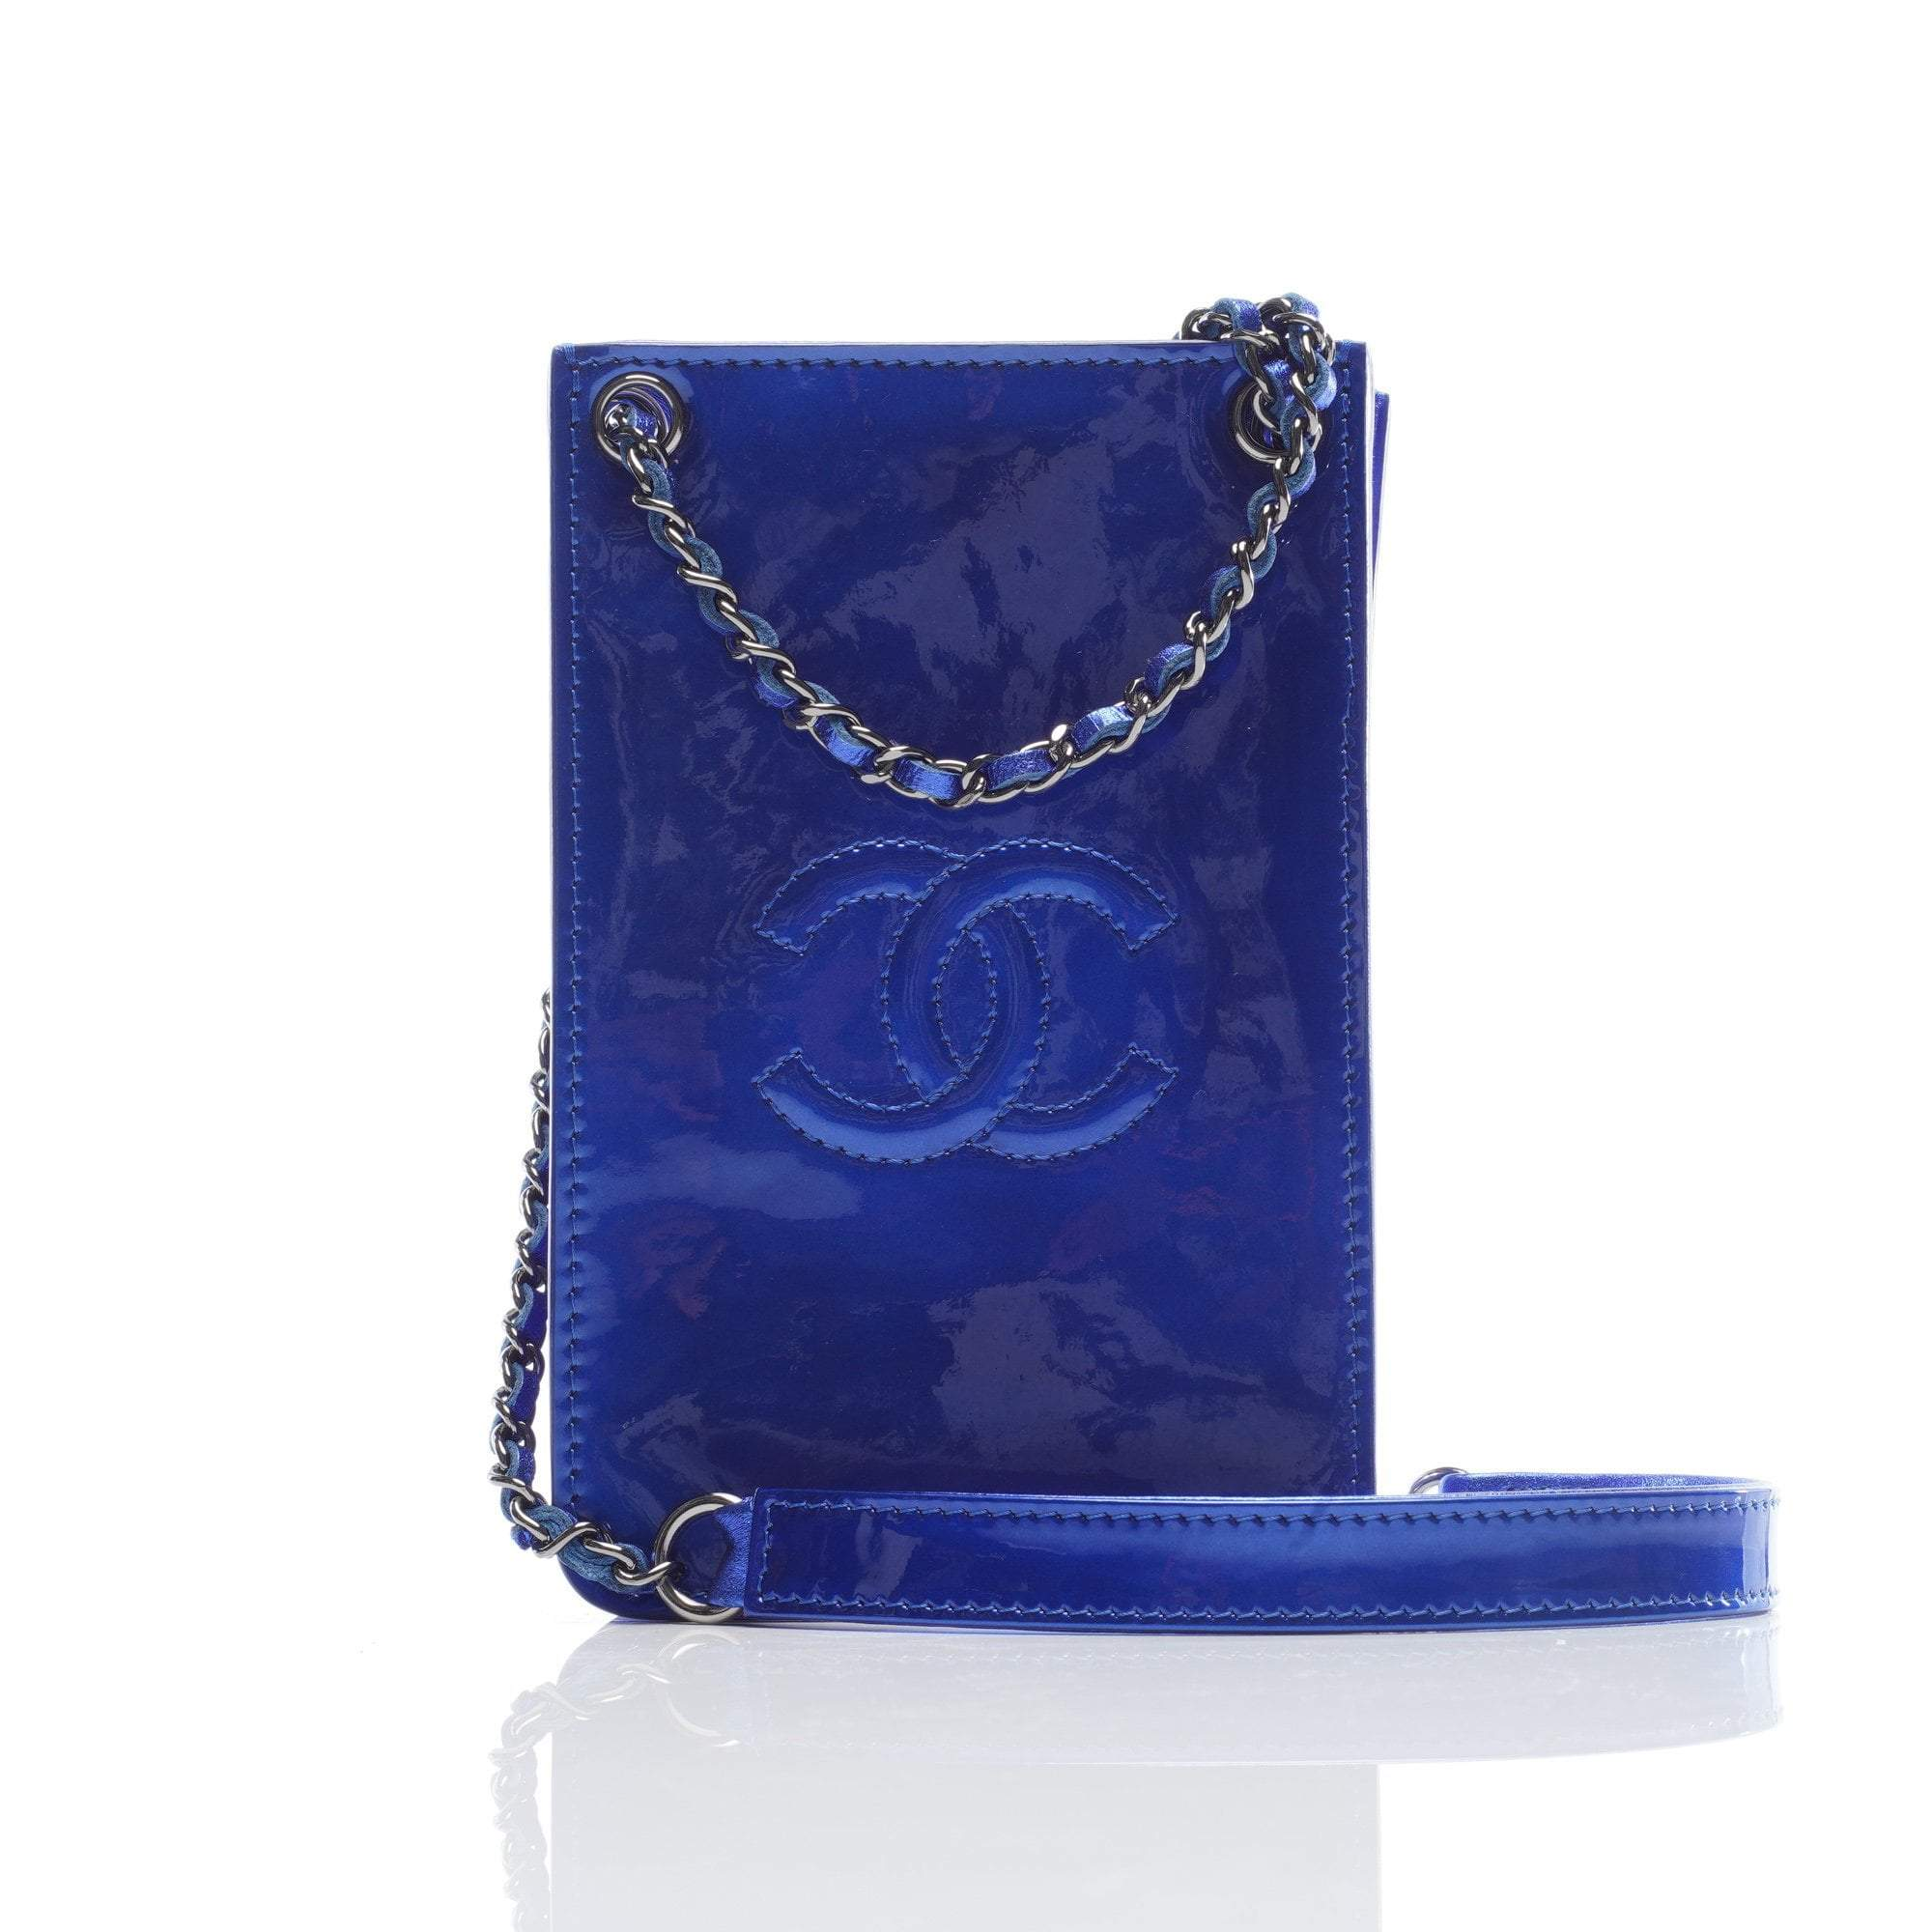 Chanel Royal Blue Patent Phone Case Crossbody Bag